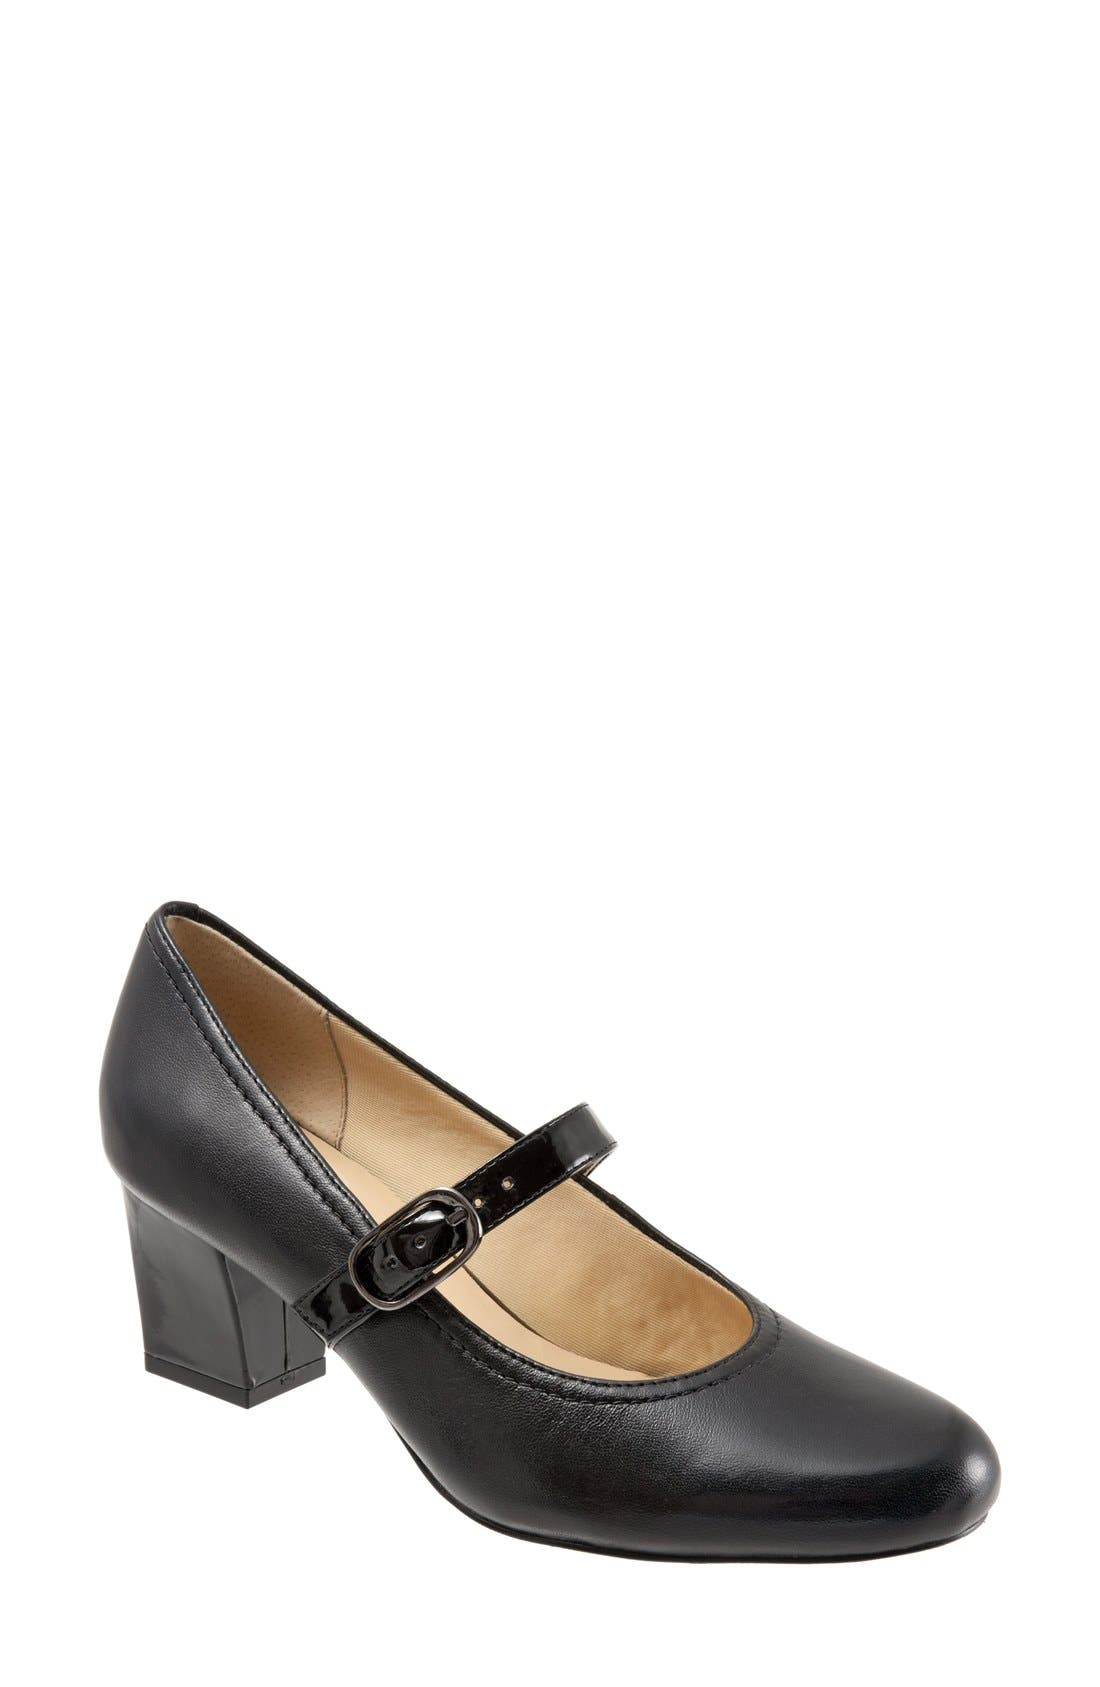 'Candice' Mary Jane Pump,                         Main,                         color, BLACK LEATHER